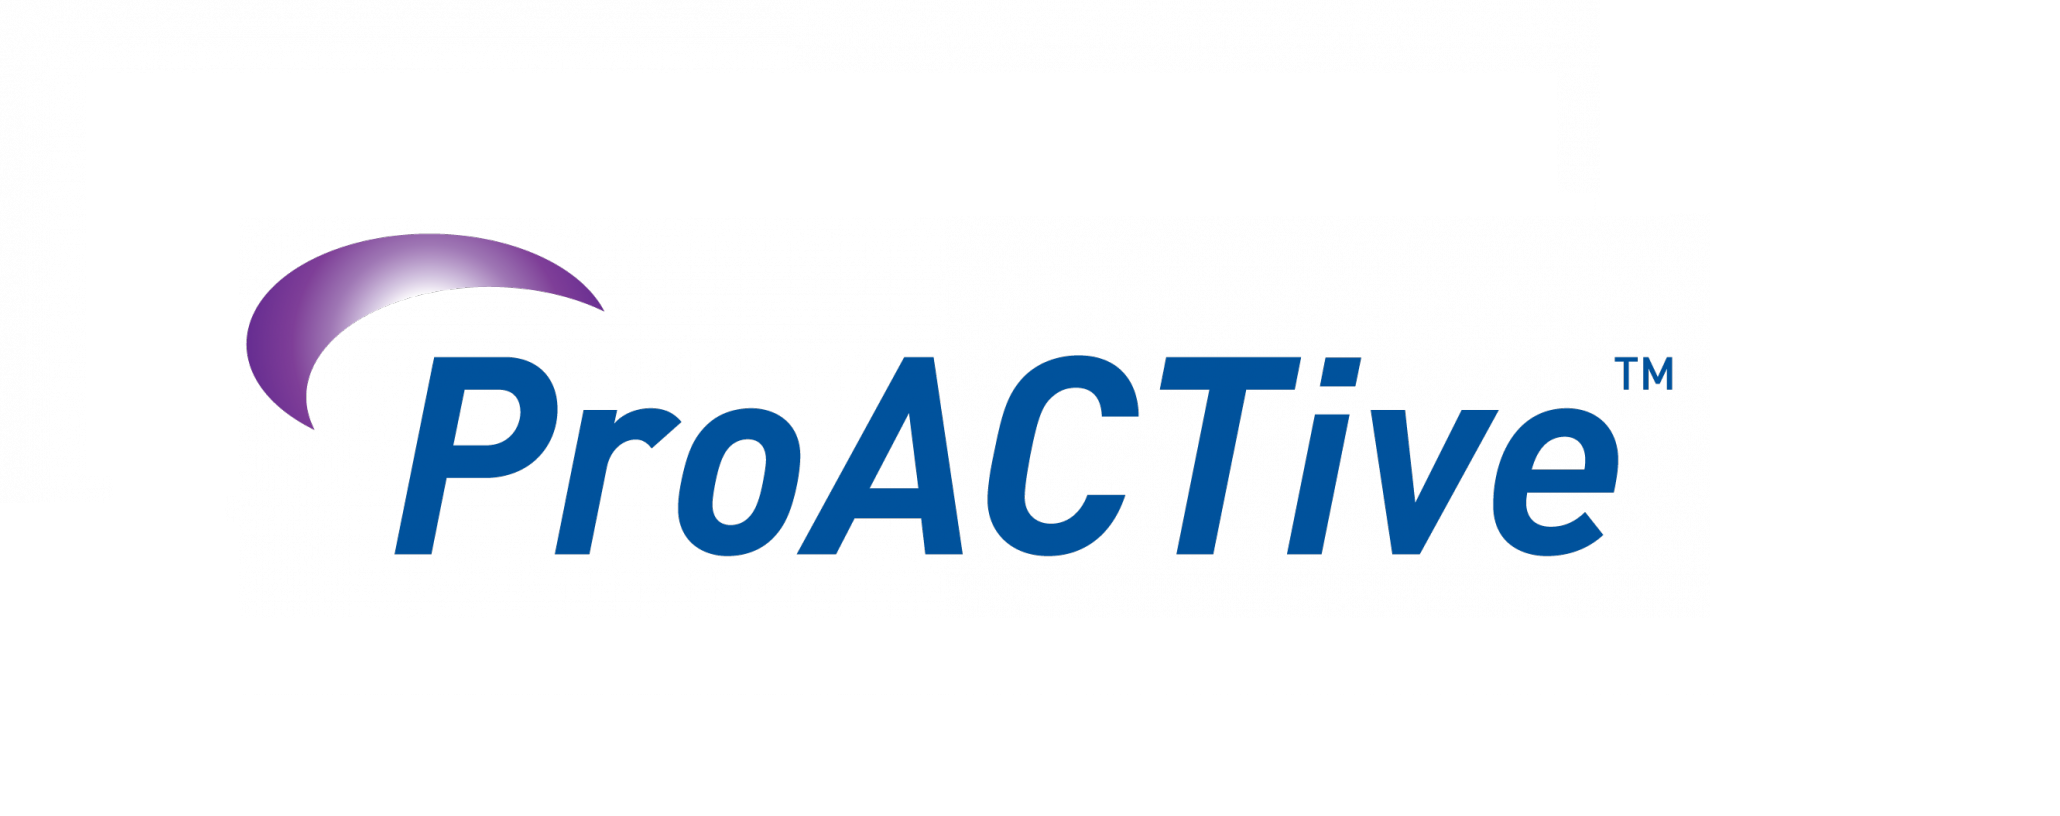 proactive-high-res-png1